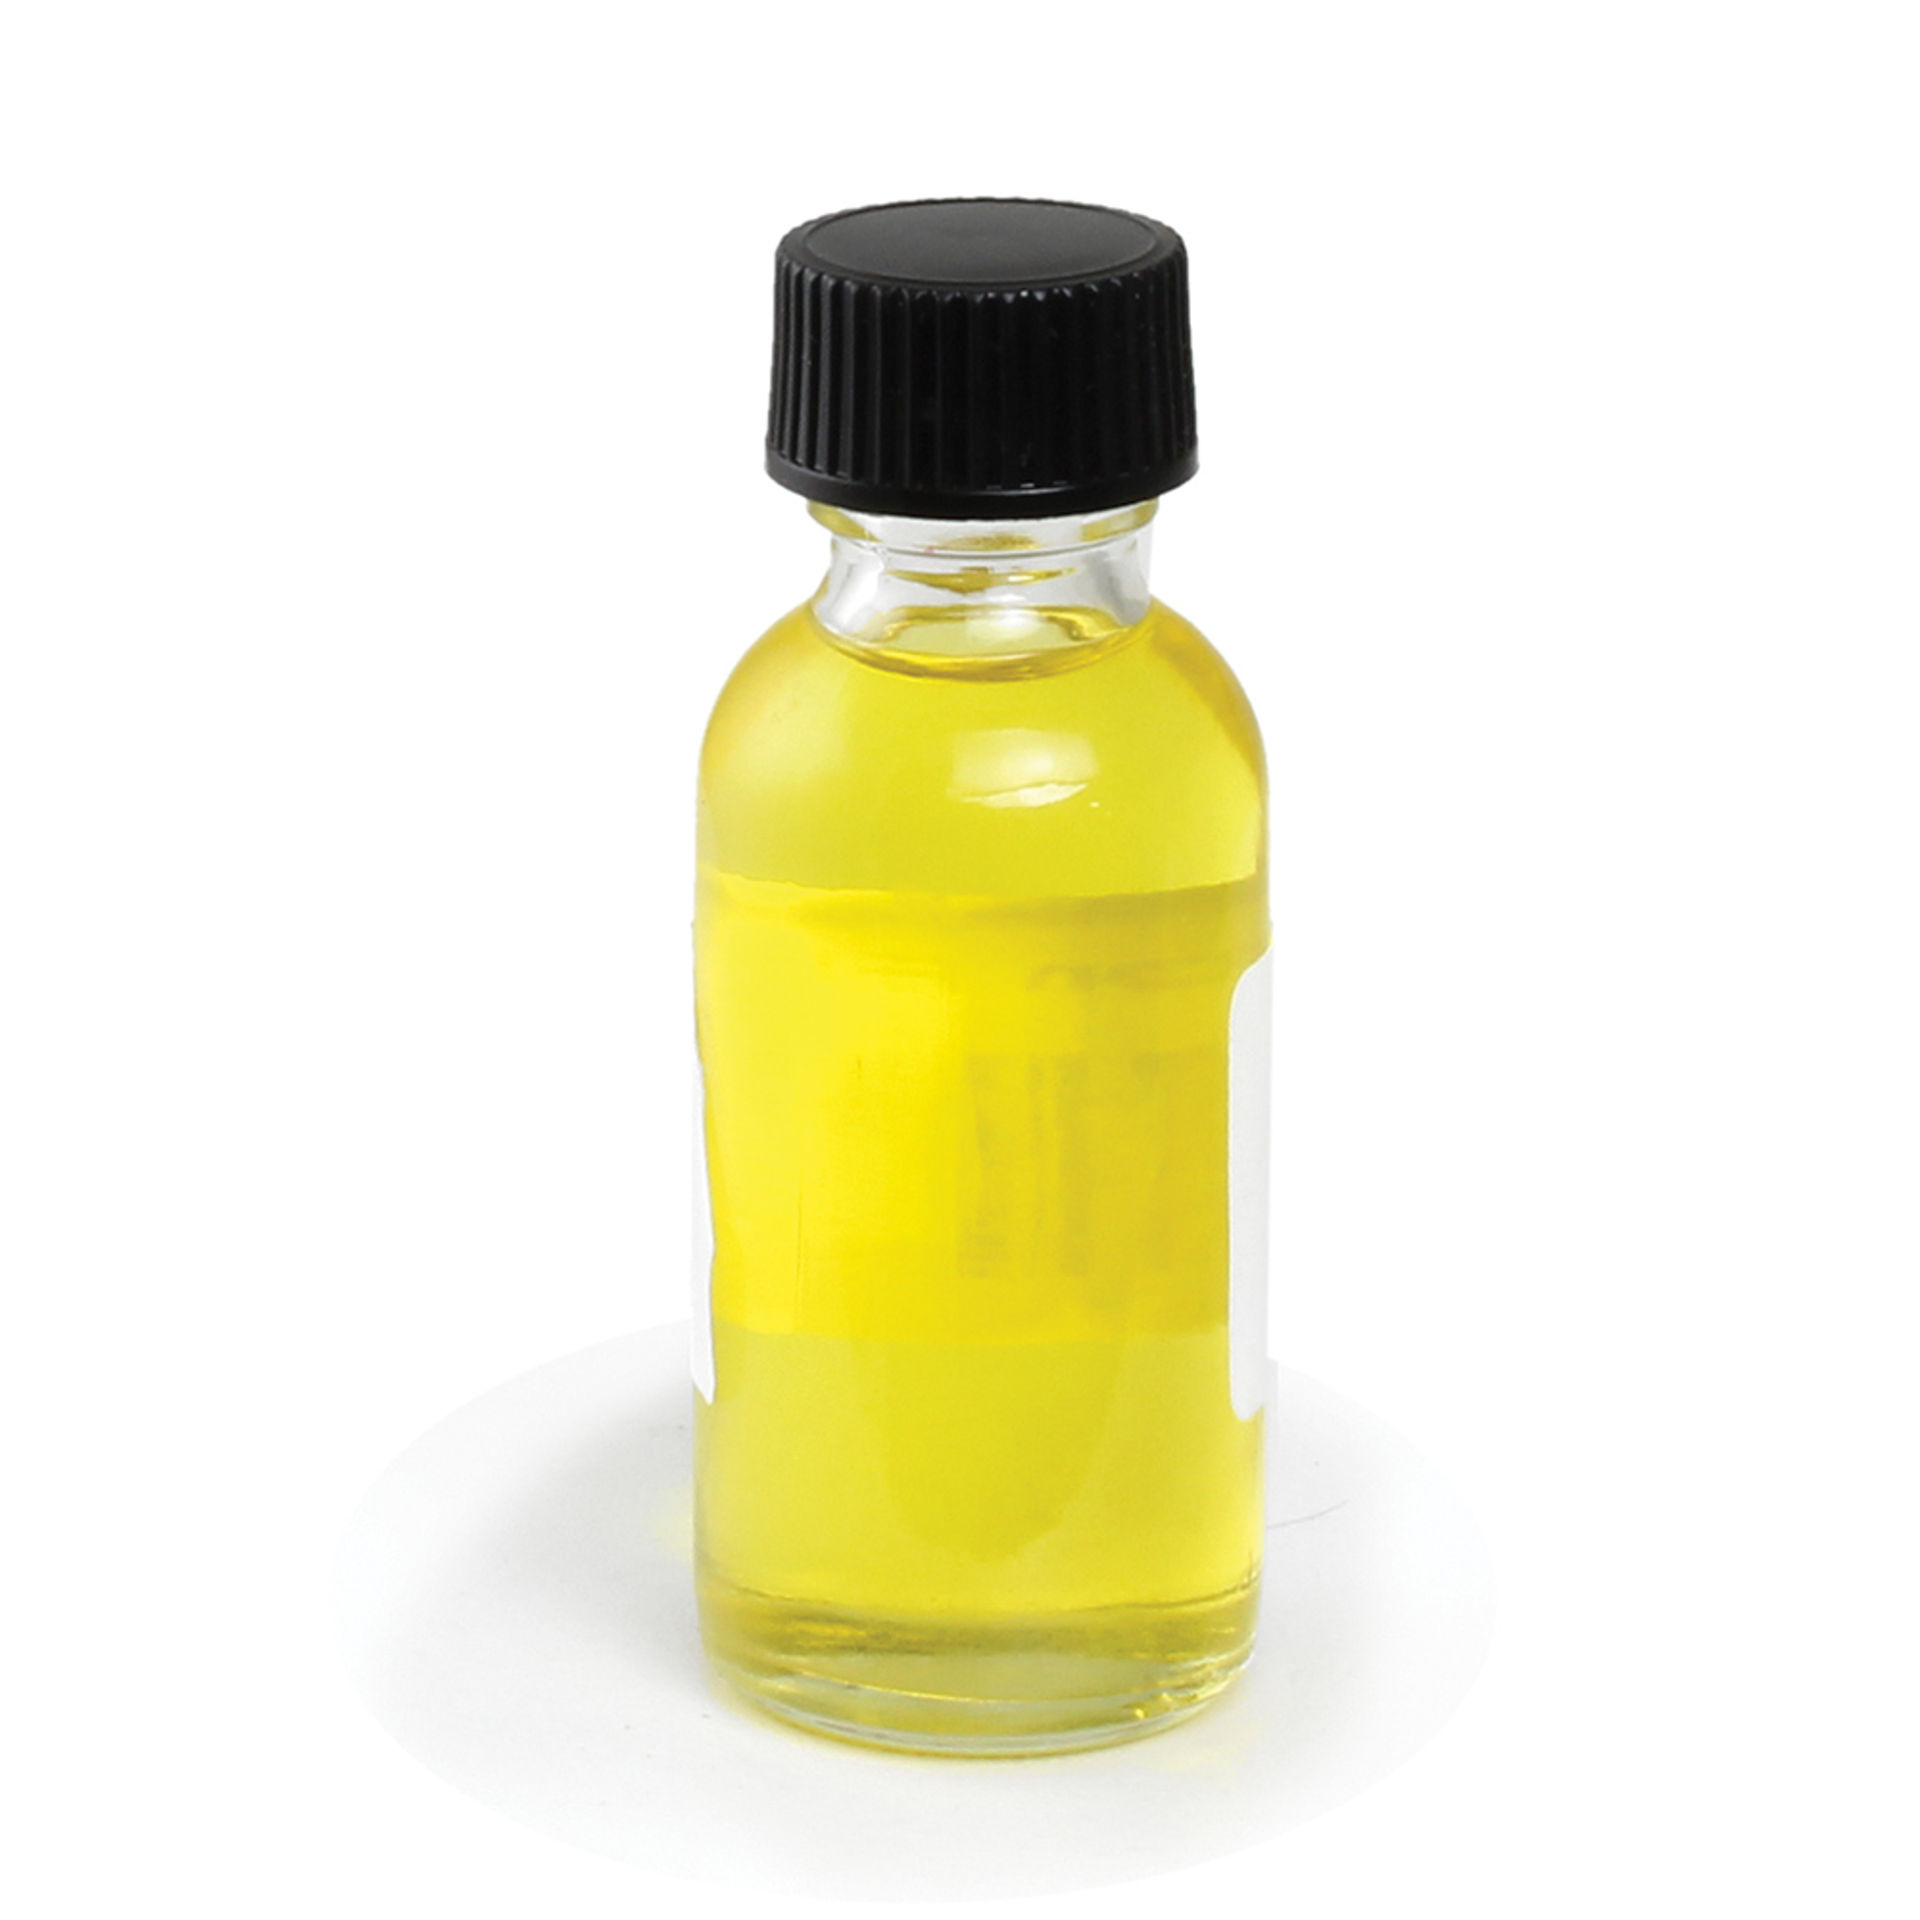 Picture of Maracuja Passion Fruit Oil - 1 oz.